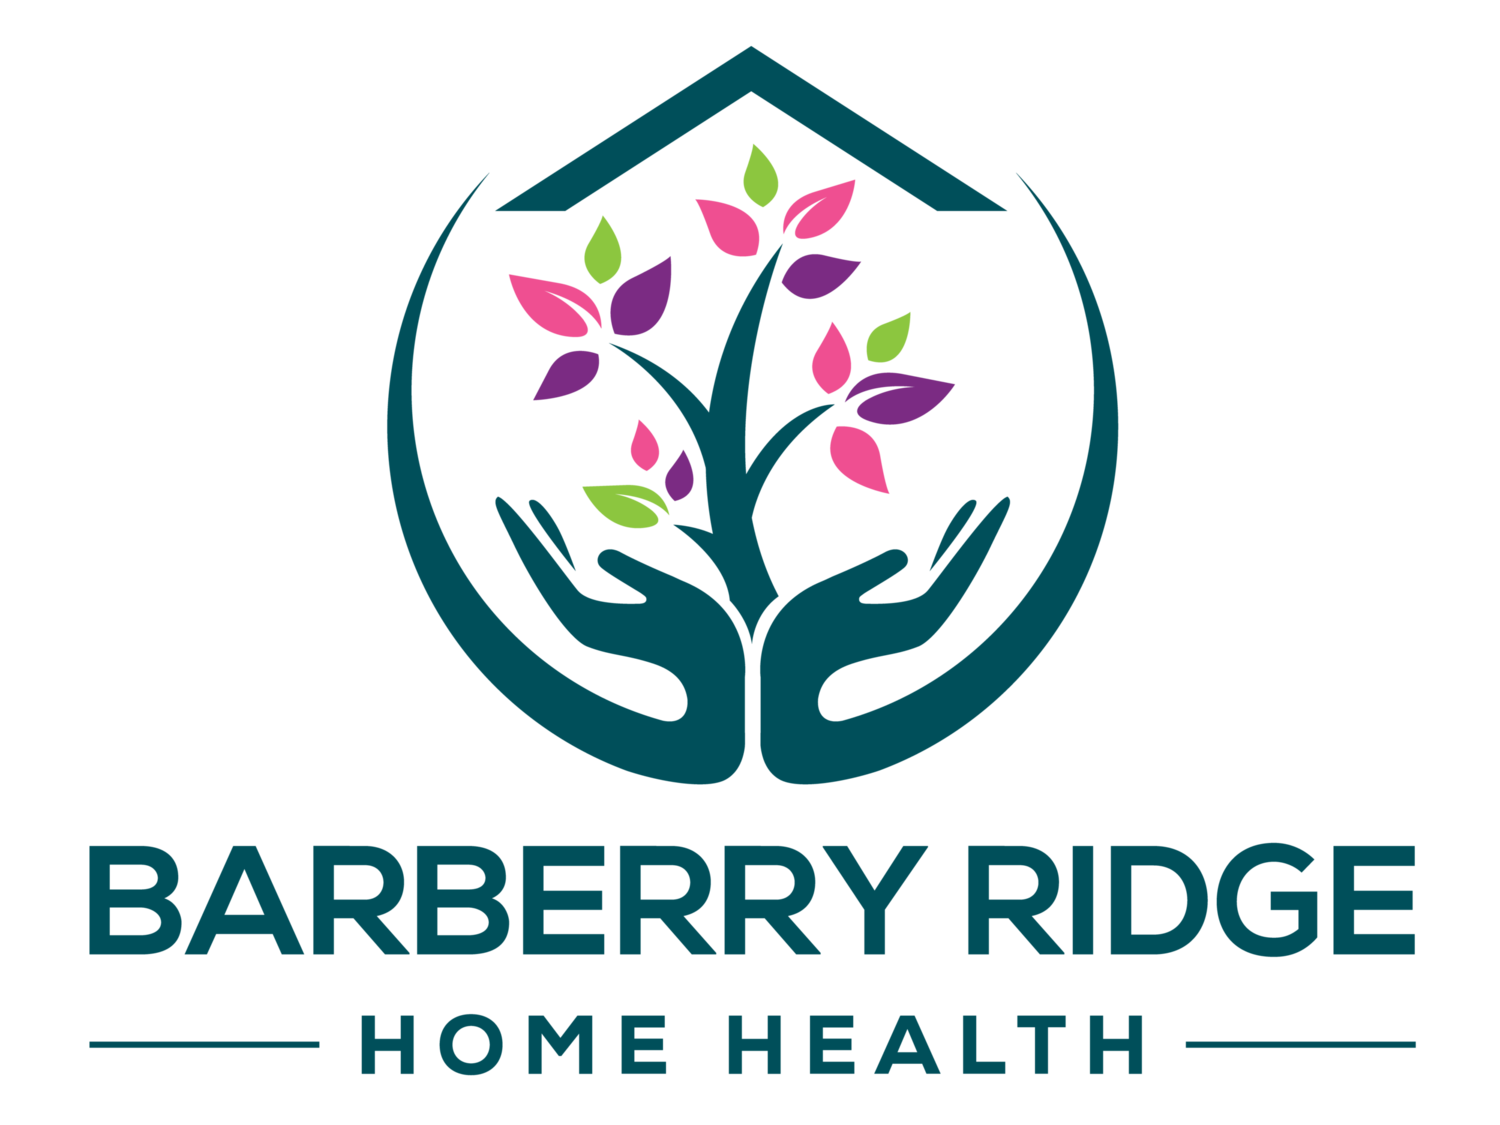 Barberry Ridge Home Health: Pittsburgh In-Home Care